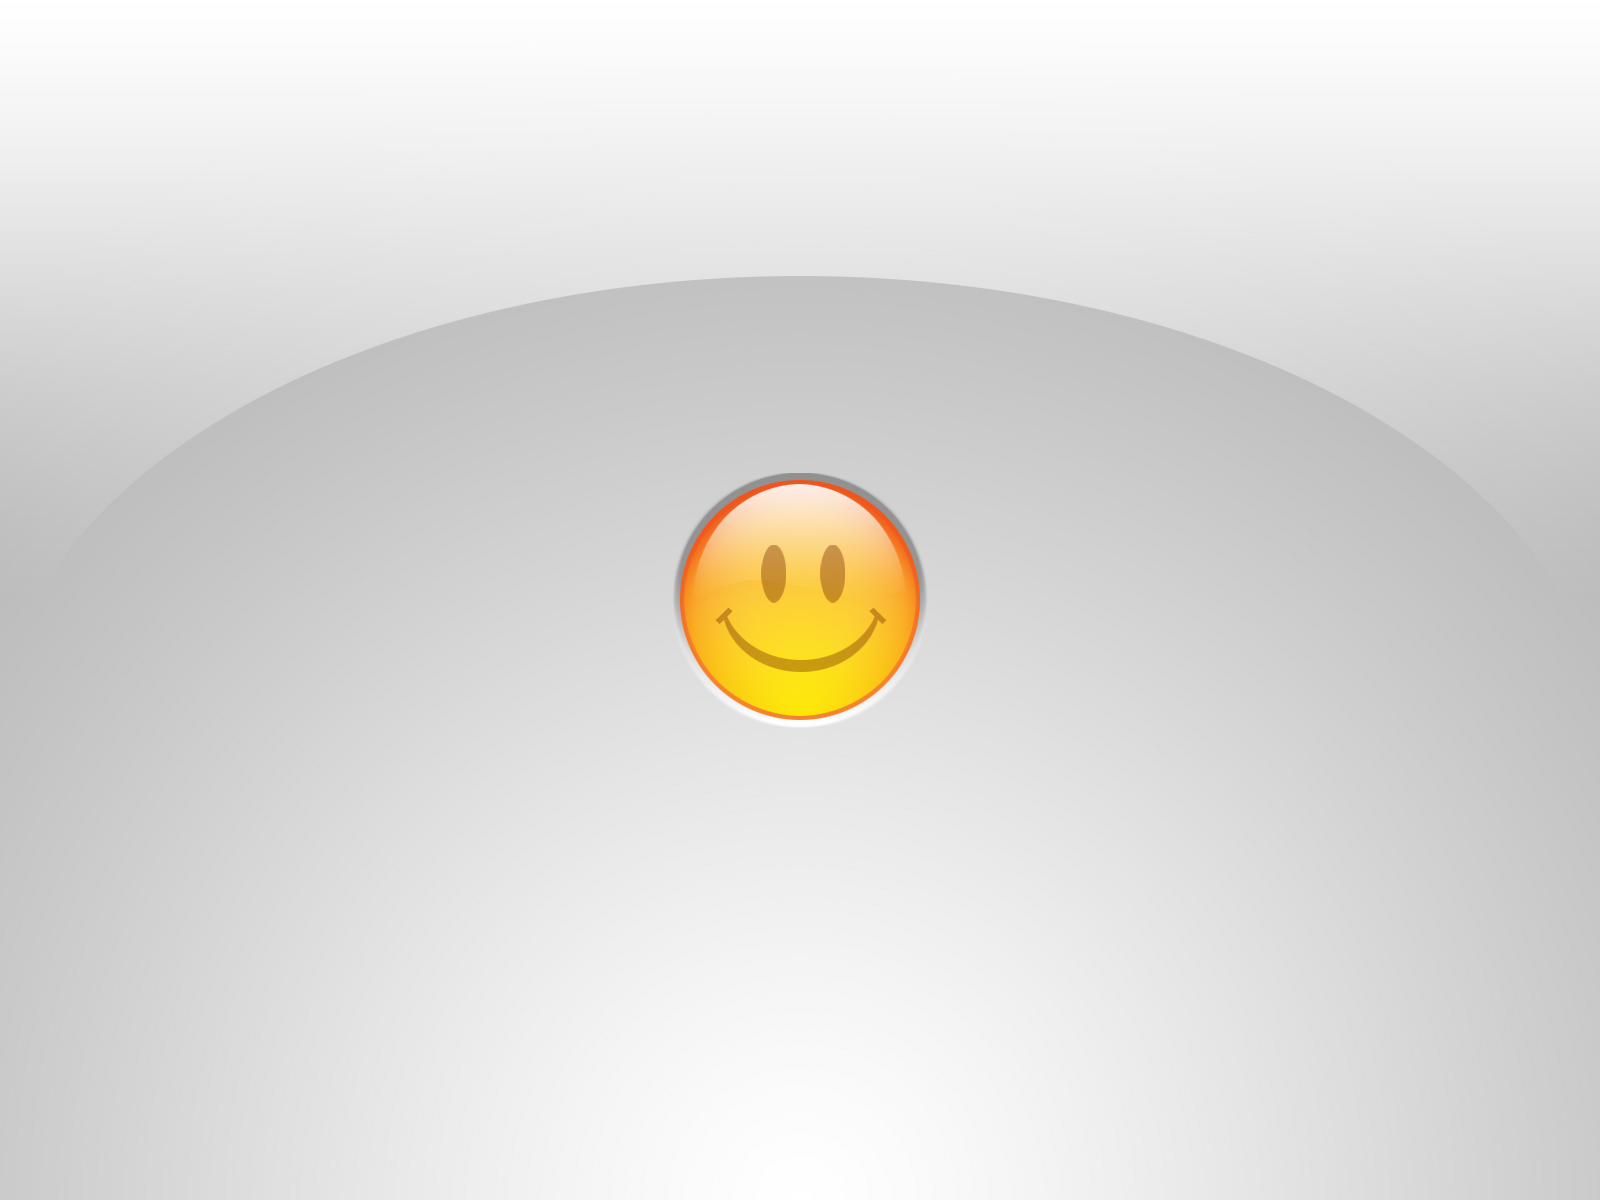 1600x1200 Yellow smiley face desktop wallpapers and stock photos